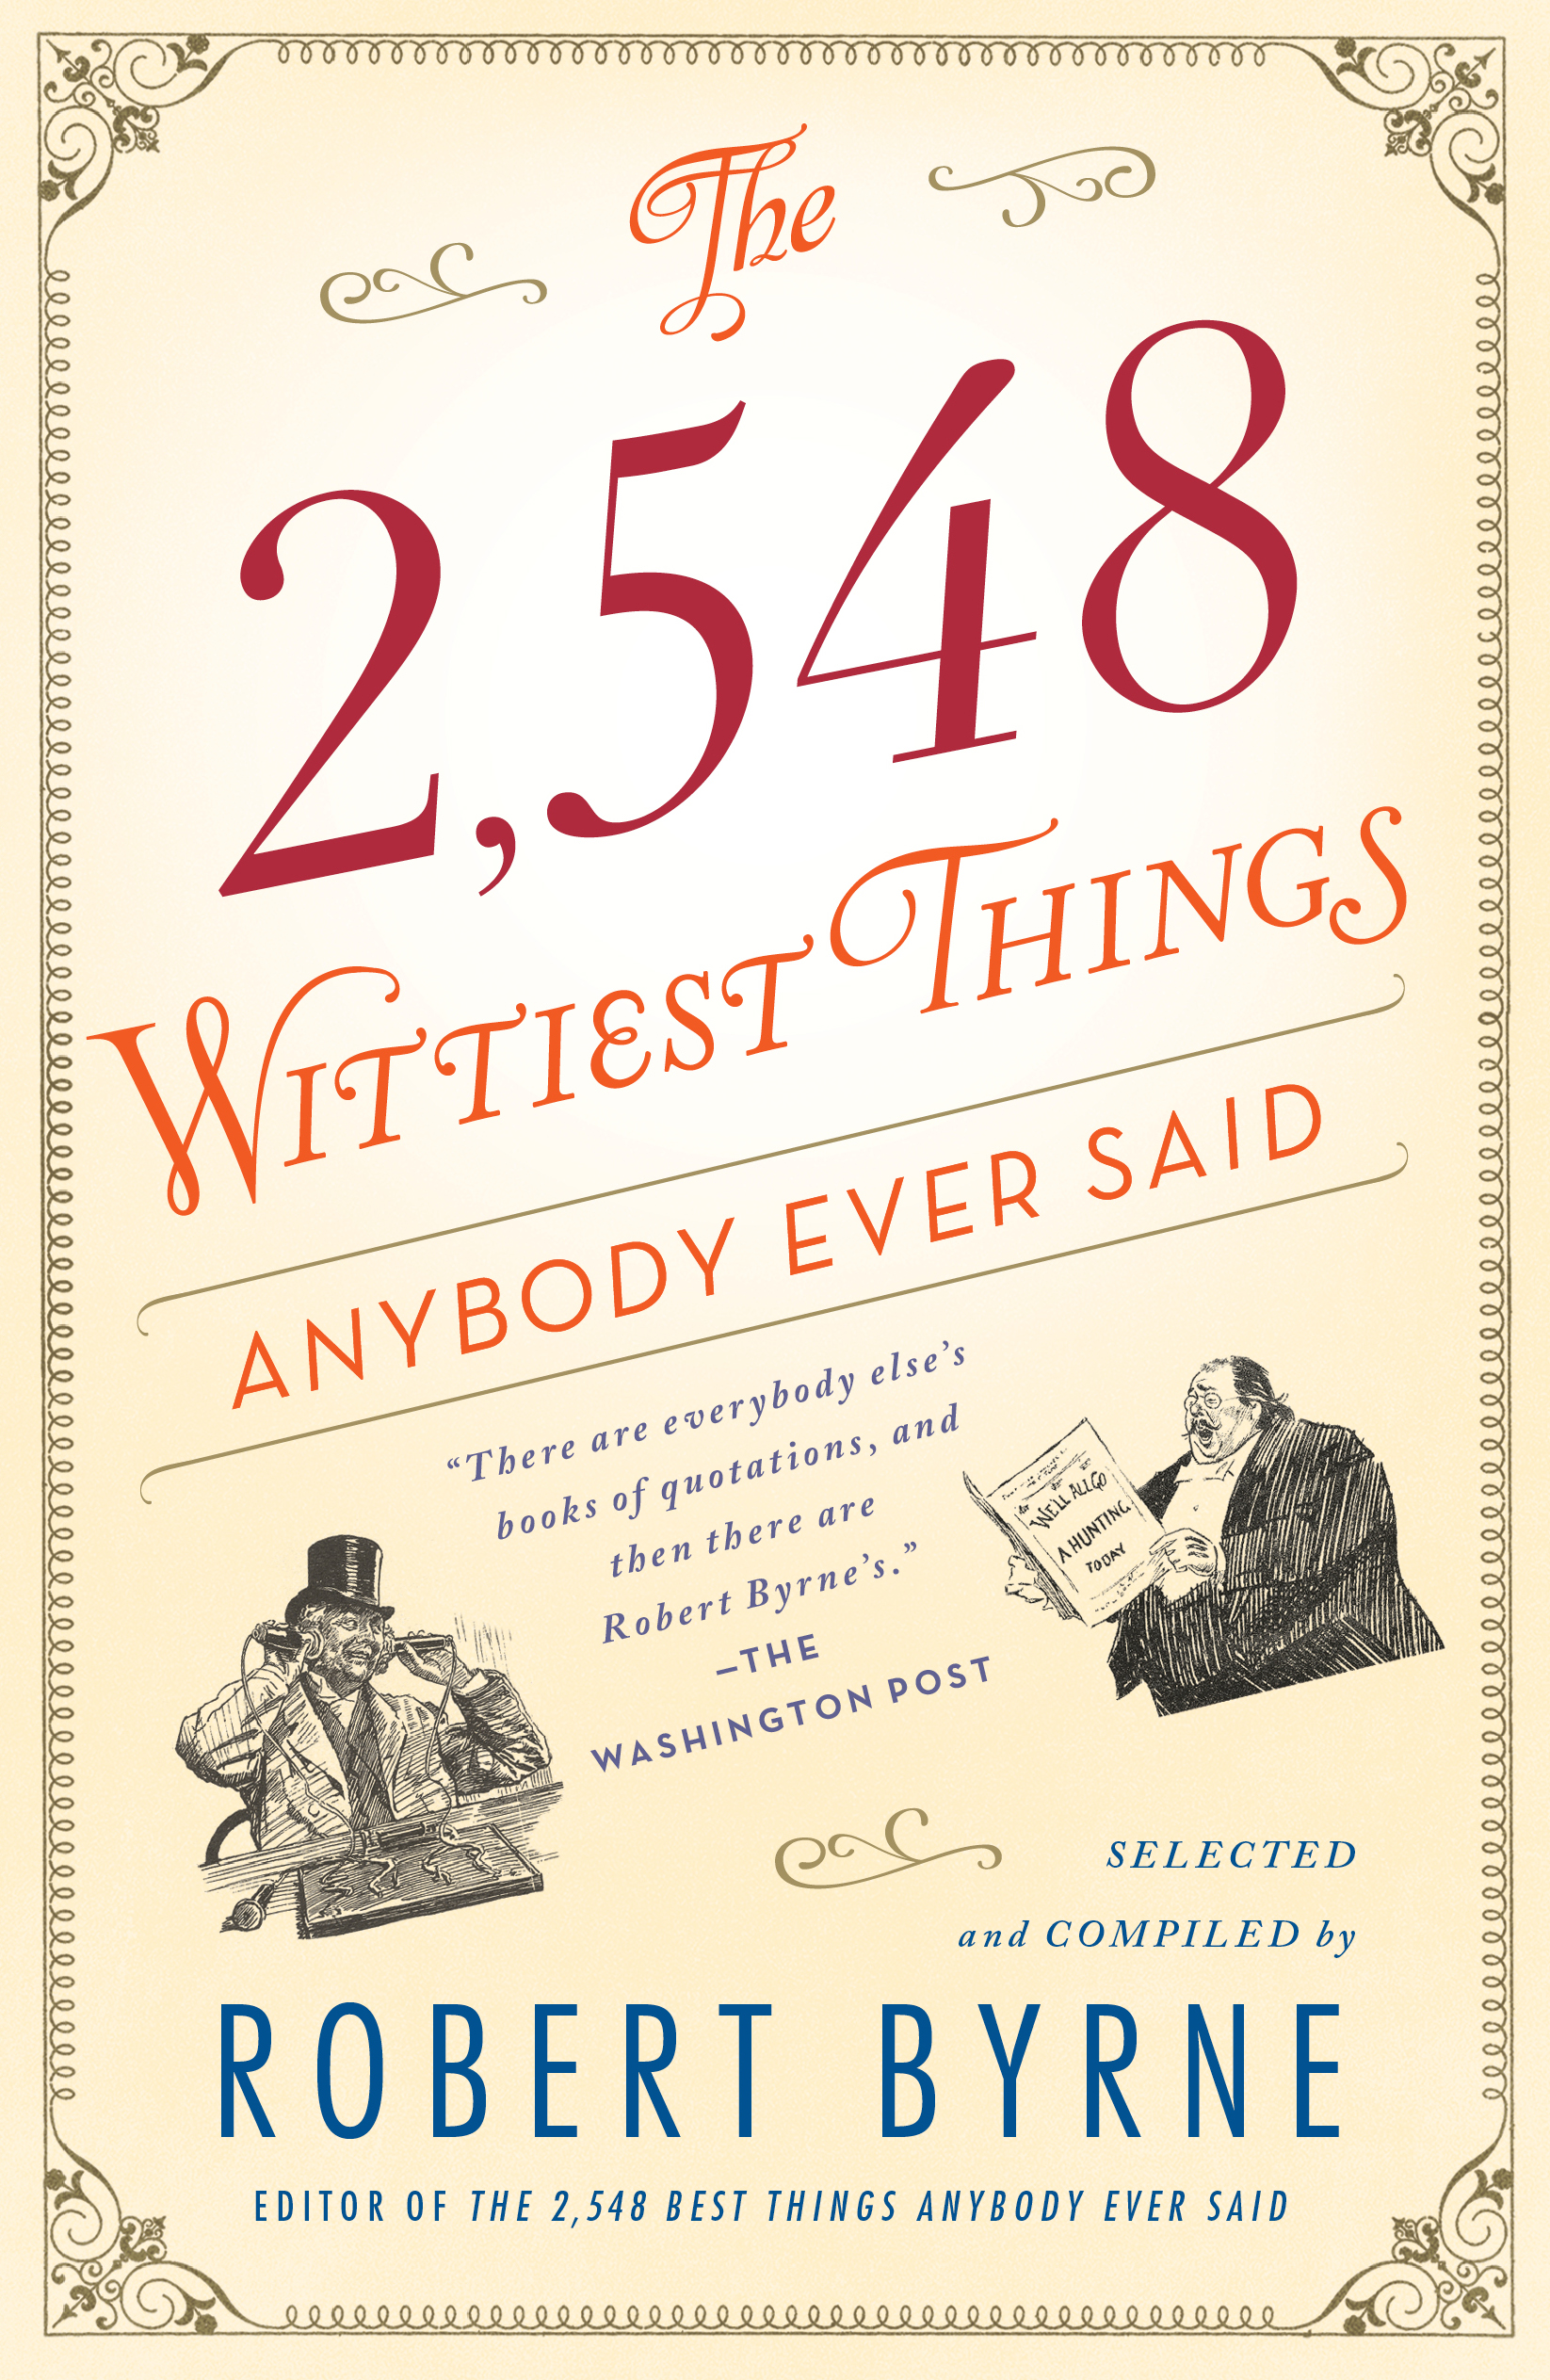 Book Cover Image (jpg): The 2,548 Wittiest Things Anybody Ever Said